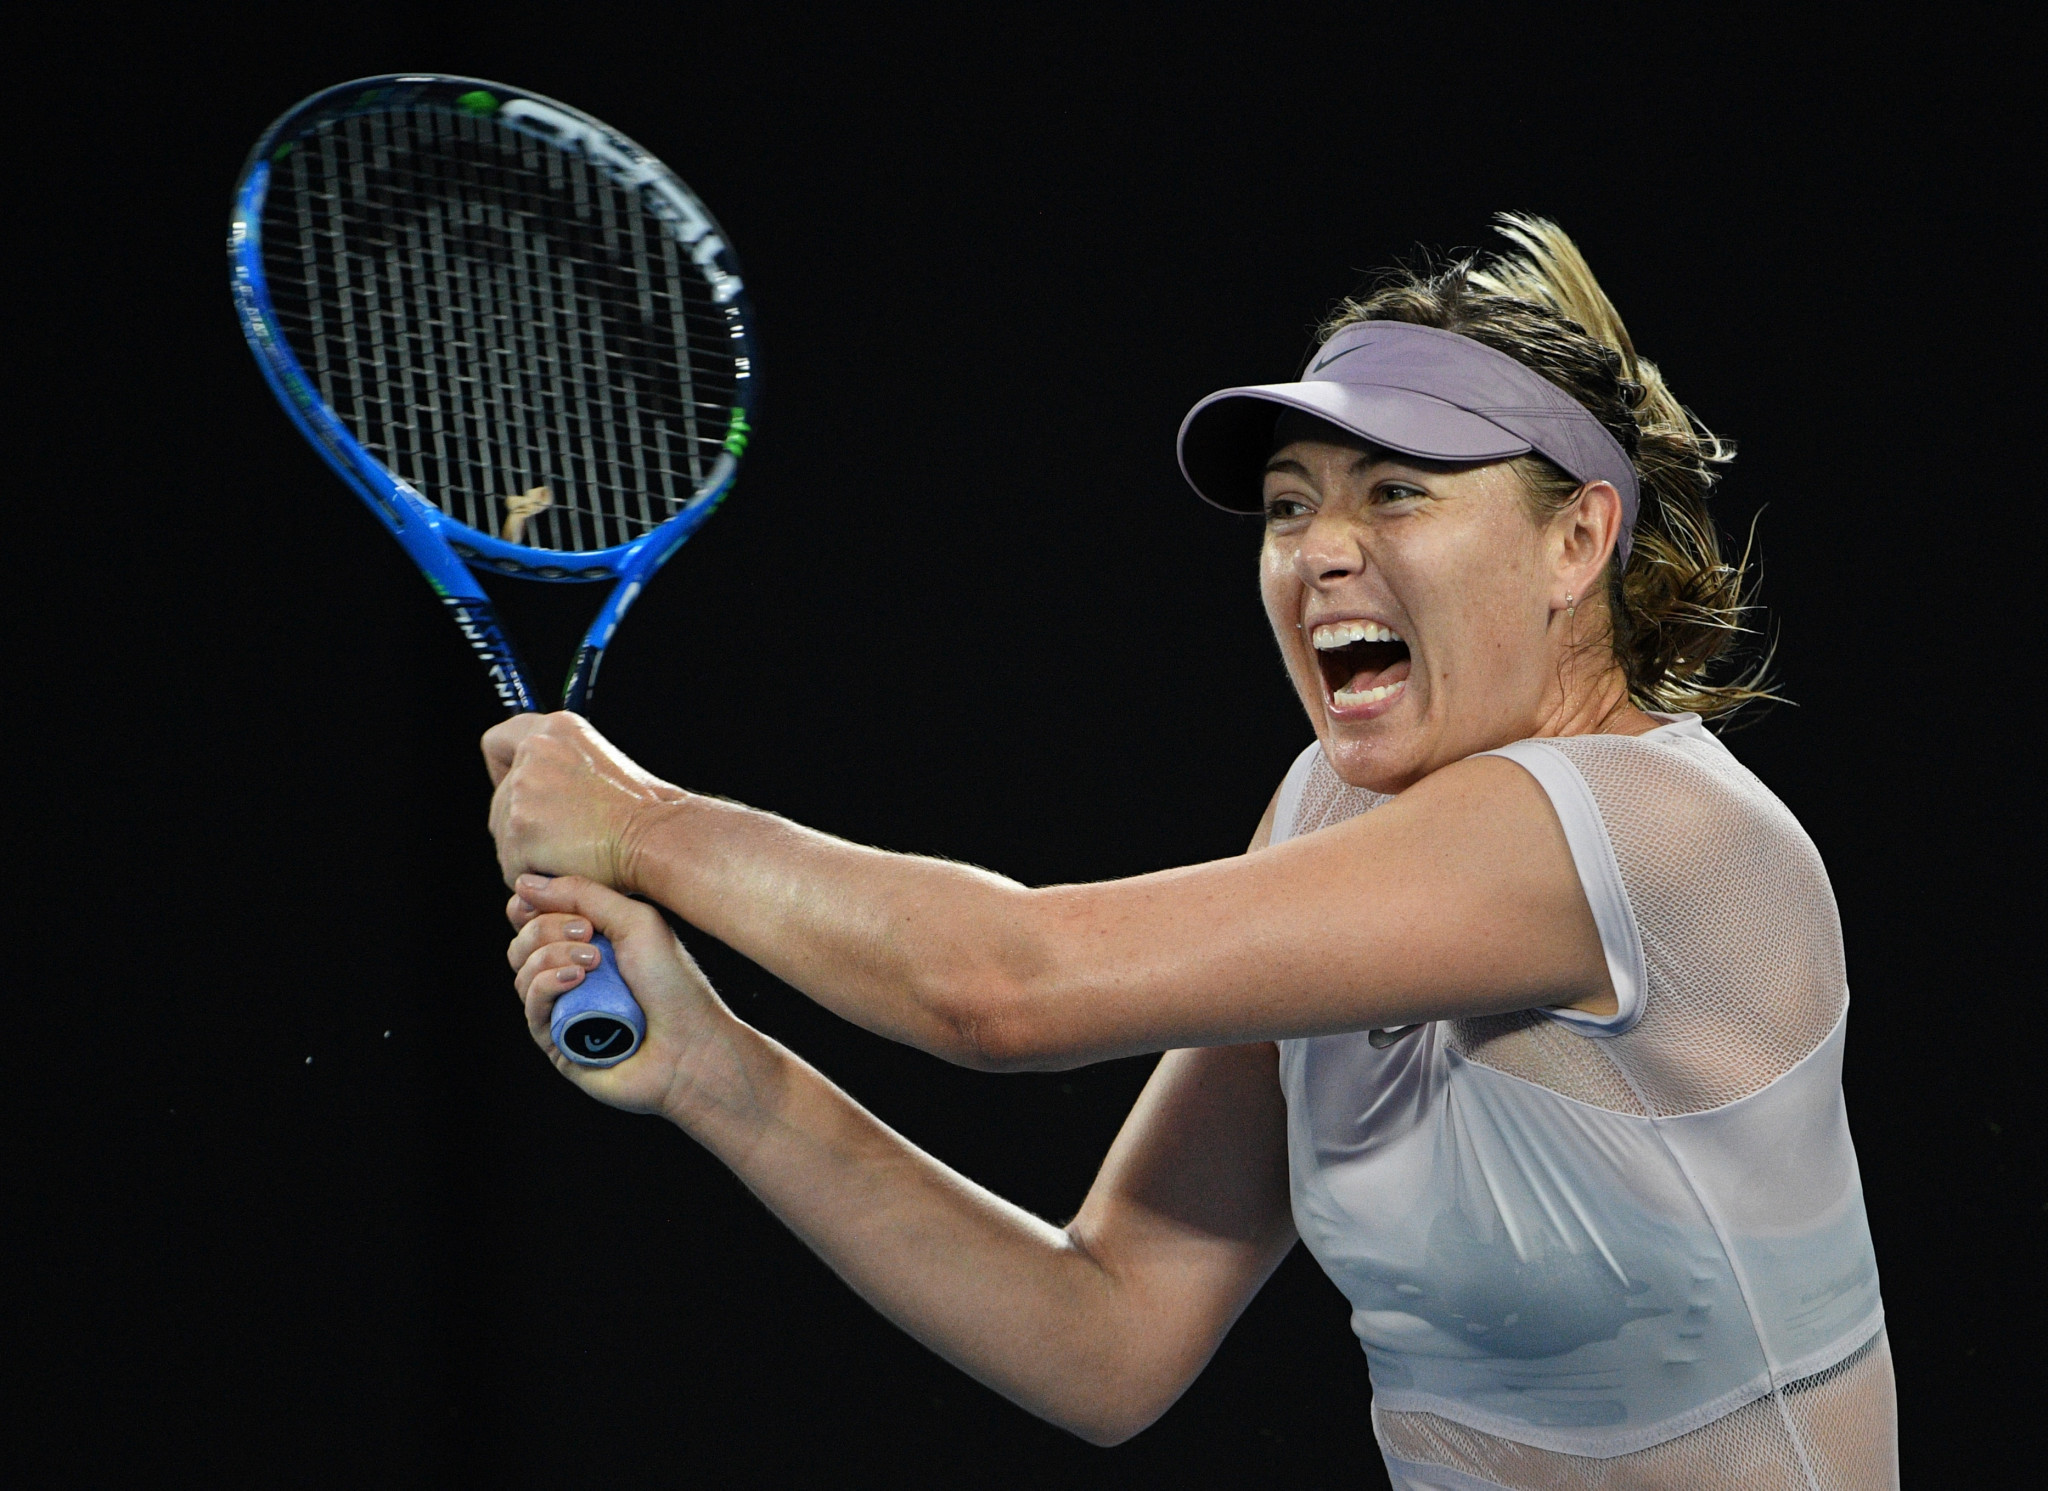 Tennis superstar Maria Sharapova was the most high-profile athlete to serve a meldonium doping suspension ©Getty Images